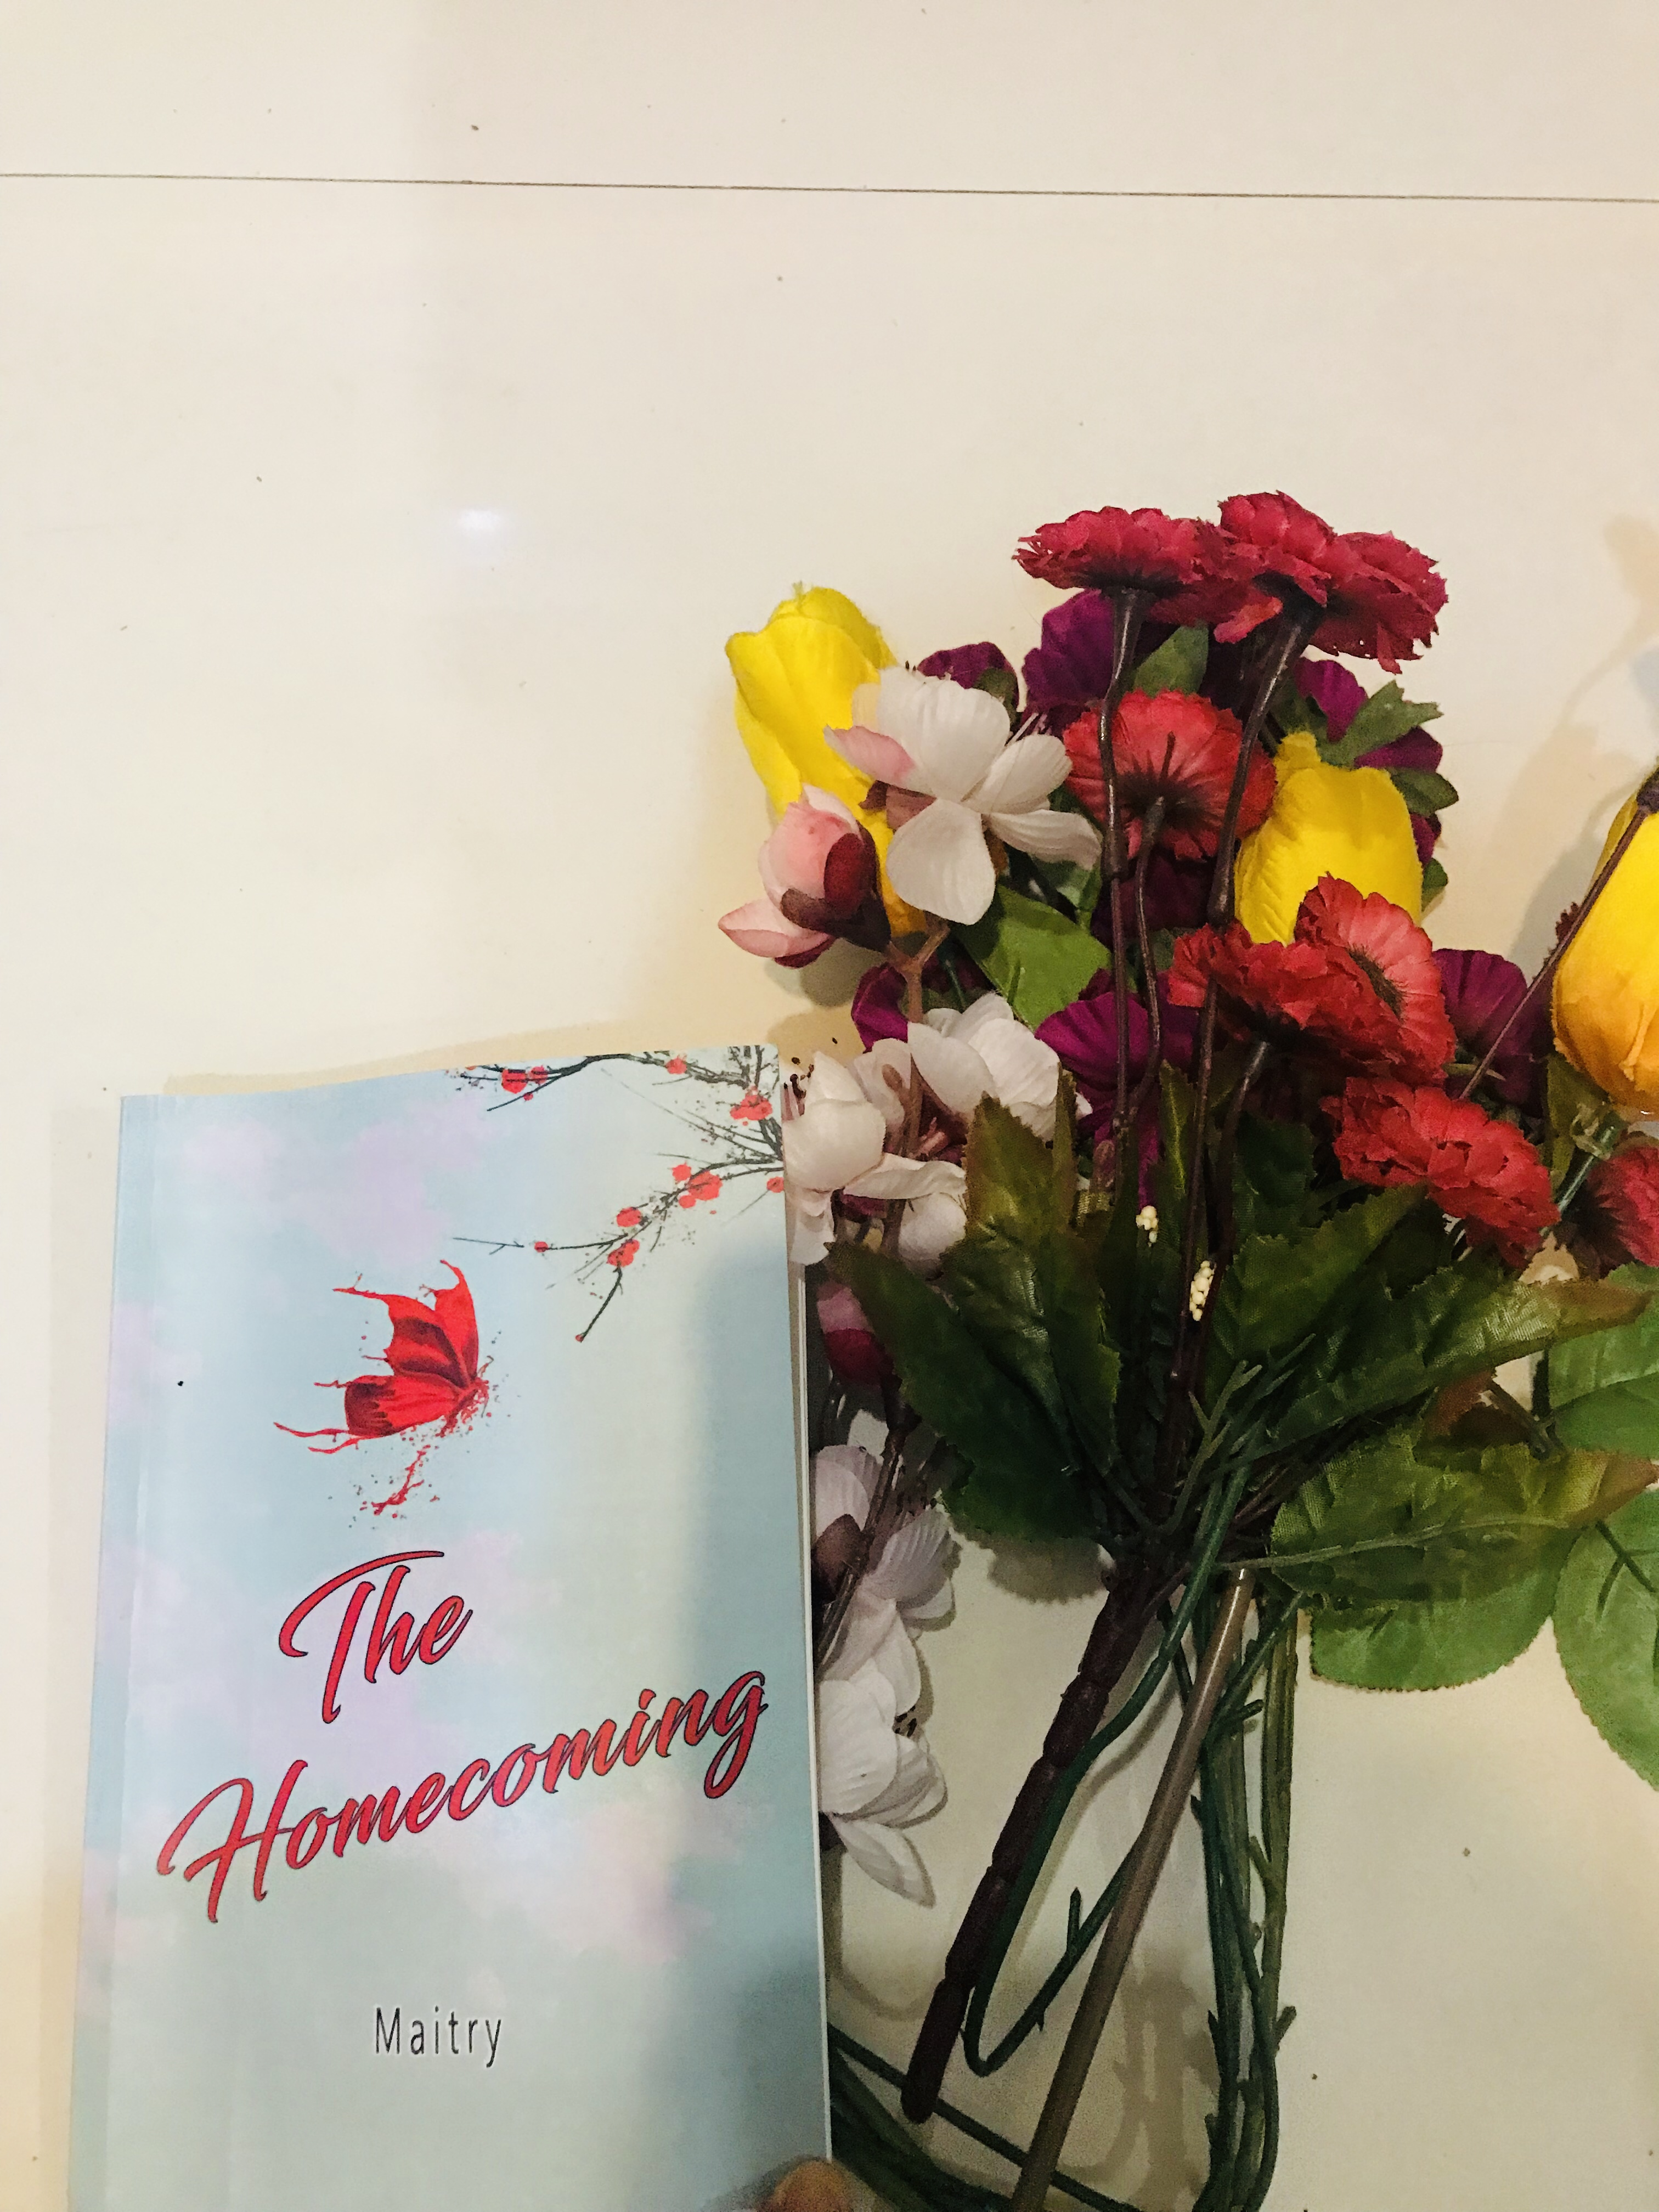 Mini Review: The Homecoming by Maitry